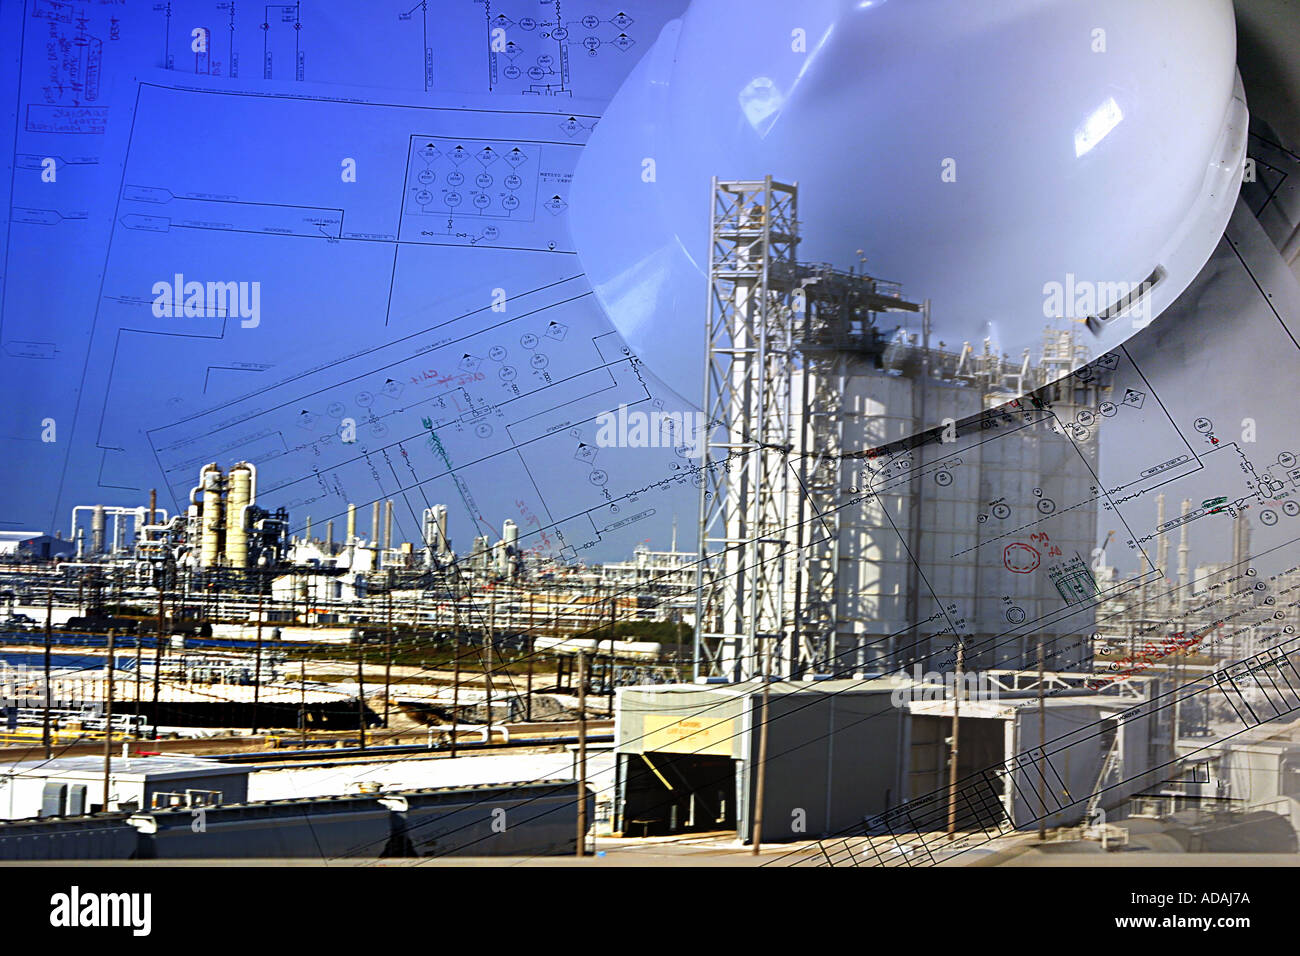 Chemical Plant And Piping Instrument Diagram Engineers Tools Instrumentation Images